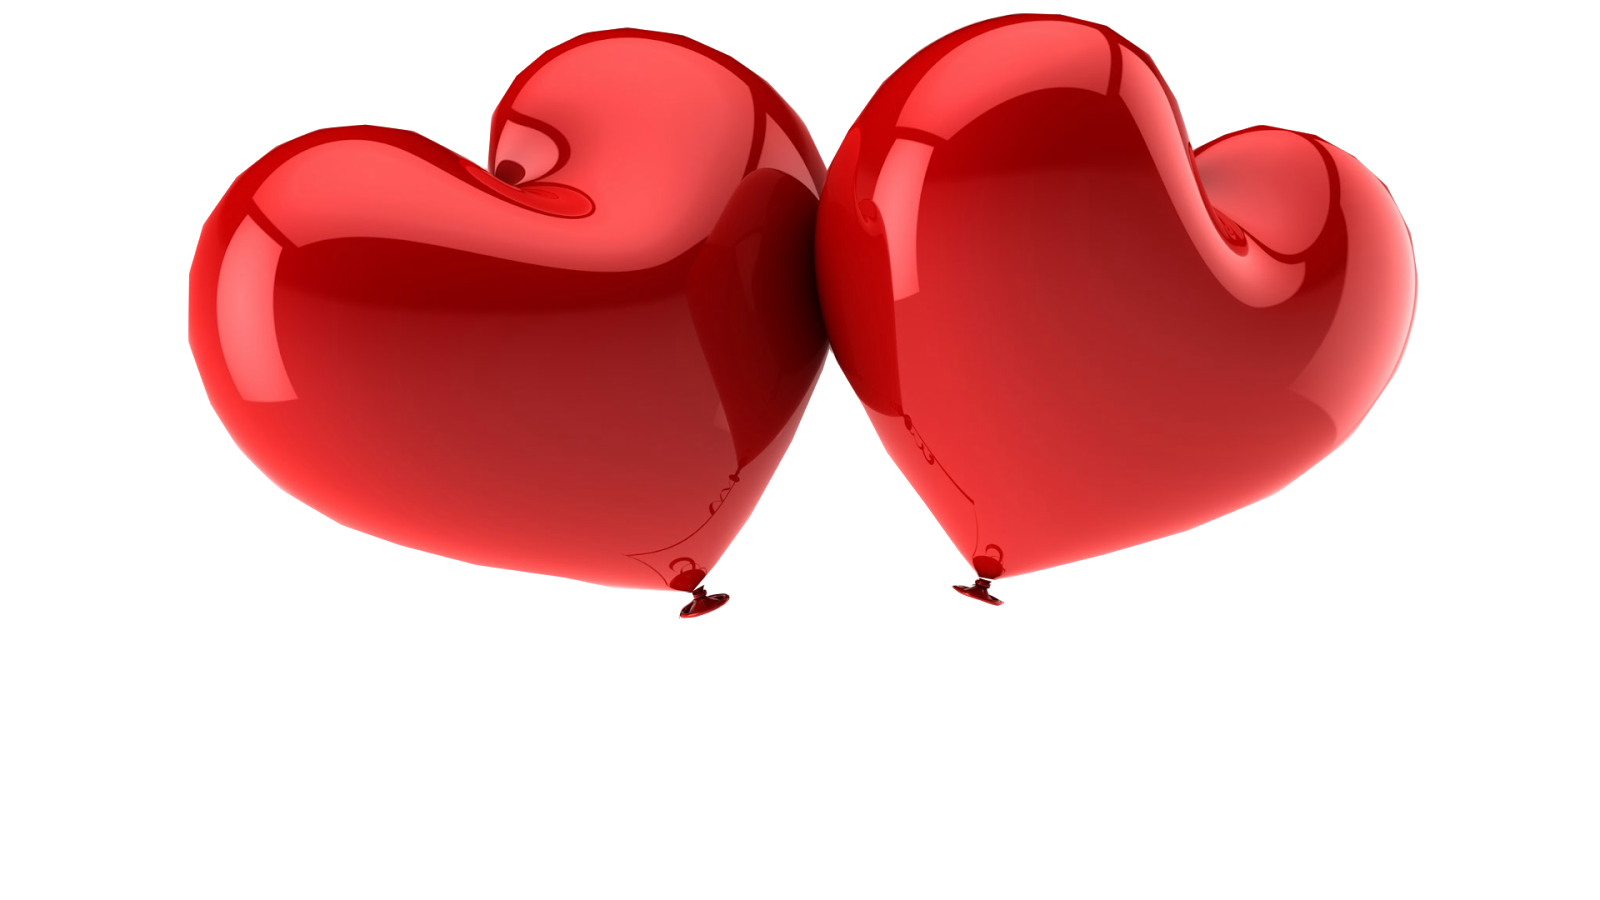 Heart Valentine'S Balloon Day Photography Stock PNG Image